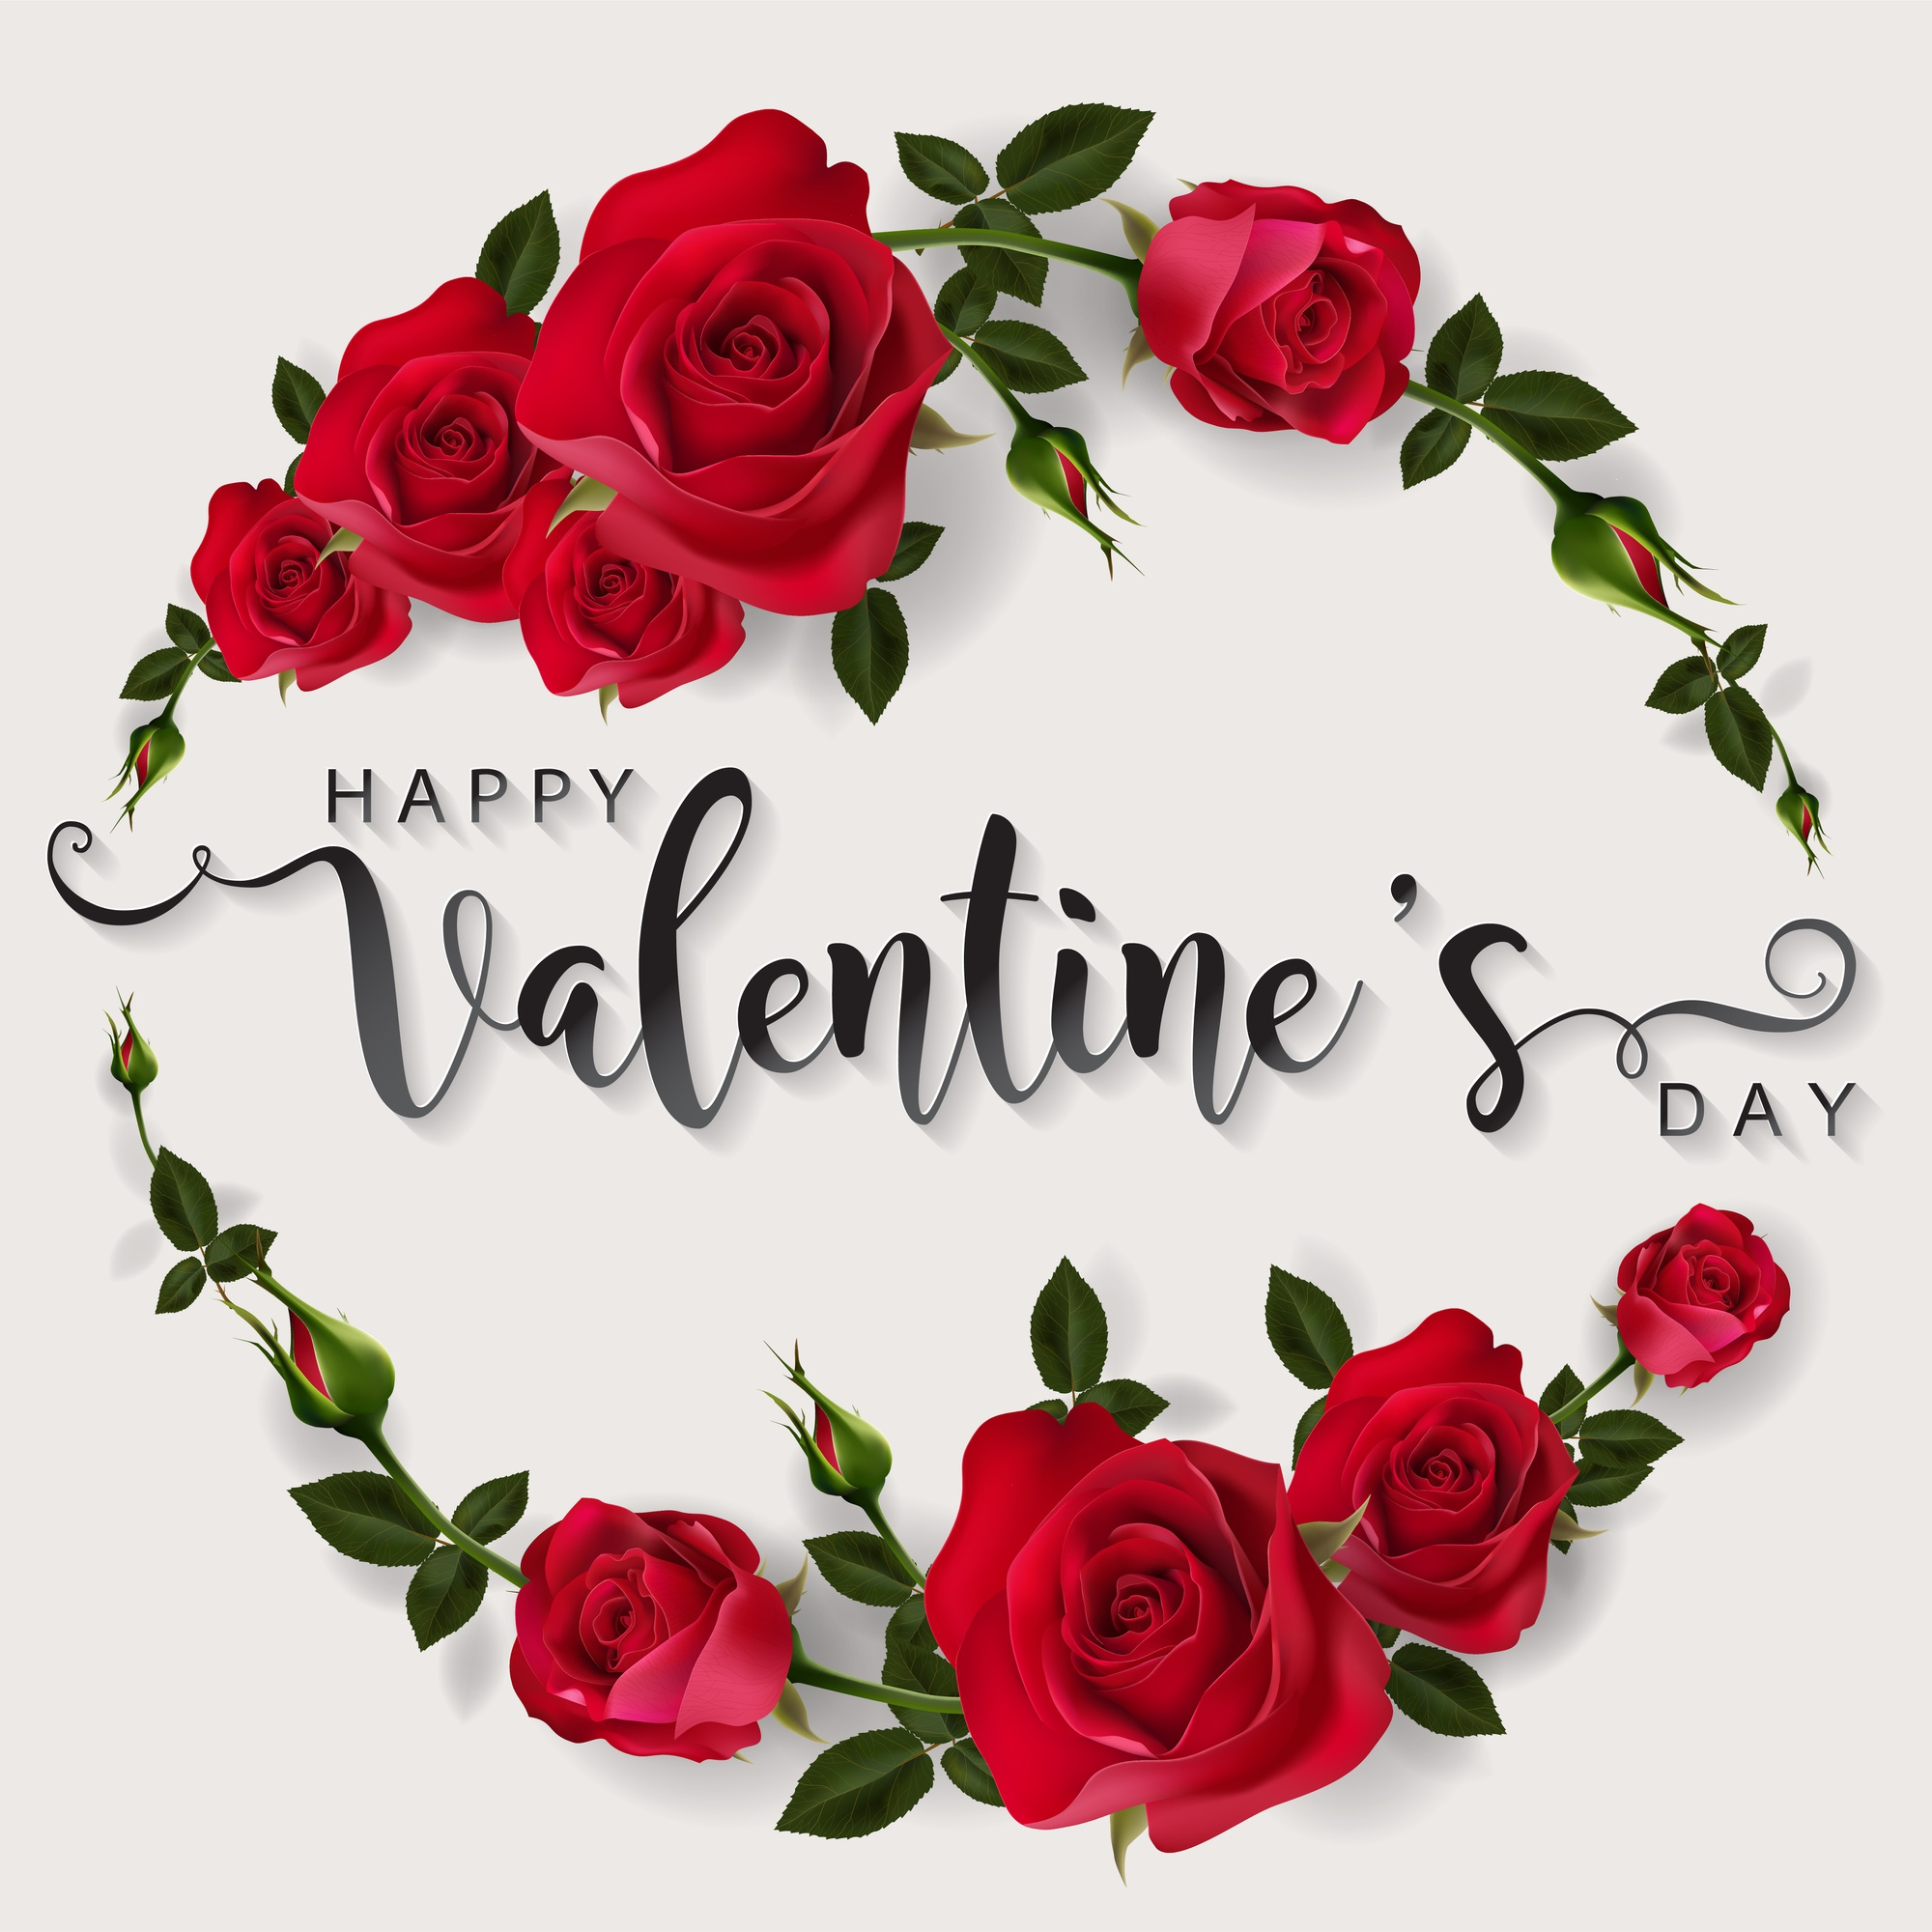 Valentine's day greeting card templates.